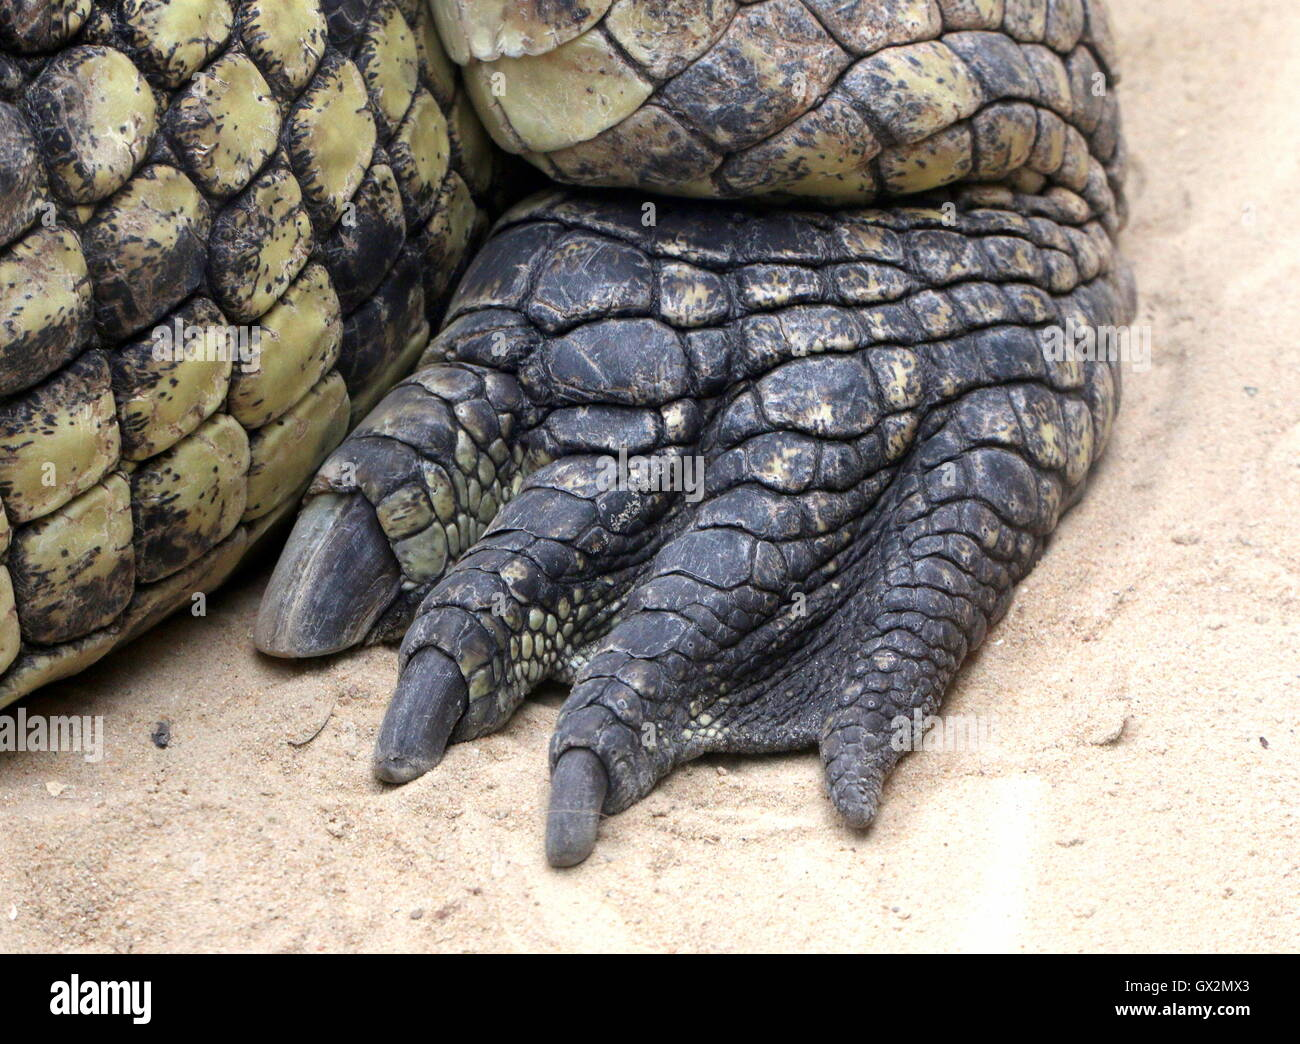 Hind claw of an African Nile crocodile (Crocodylus niloticus)  in closeup - Stock Image